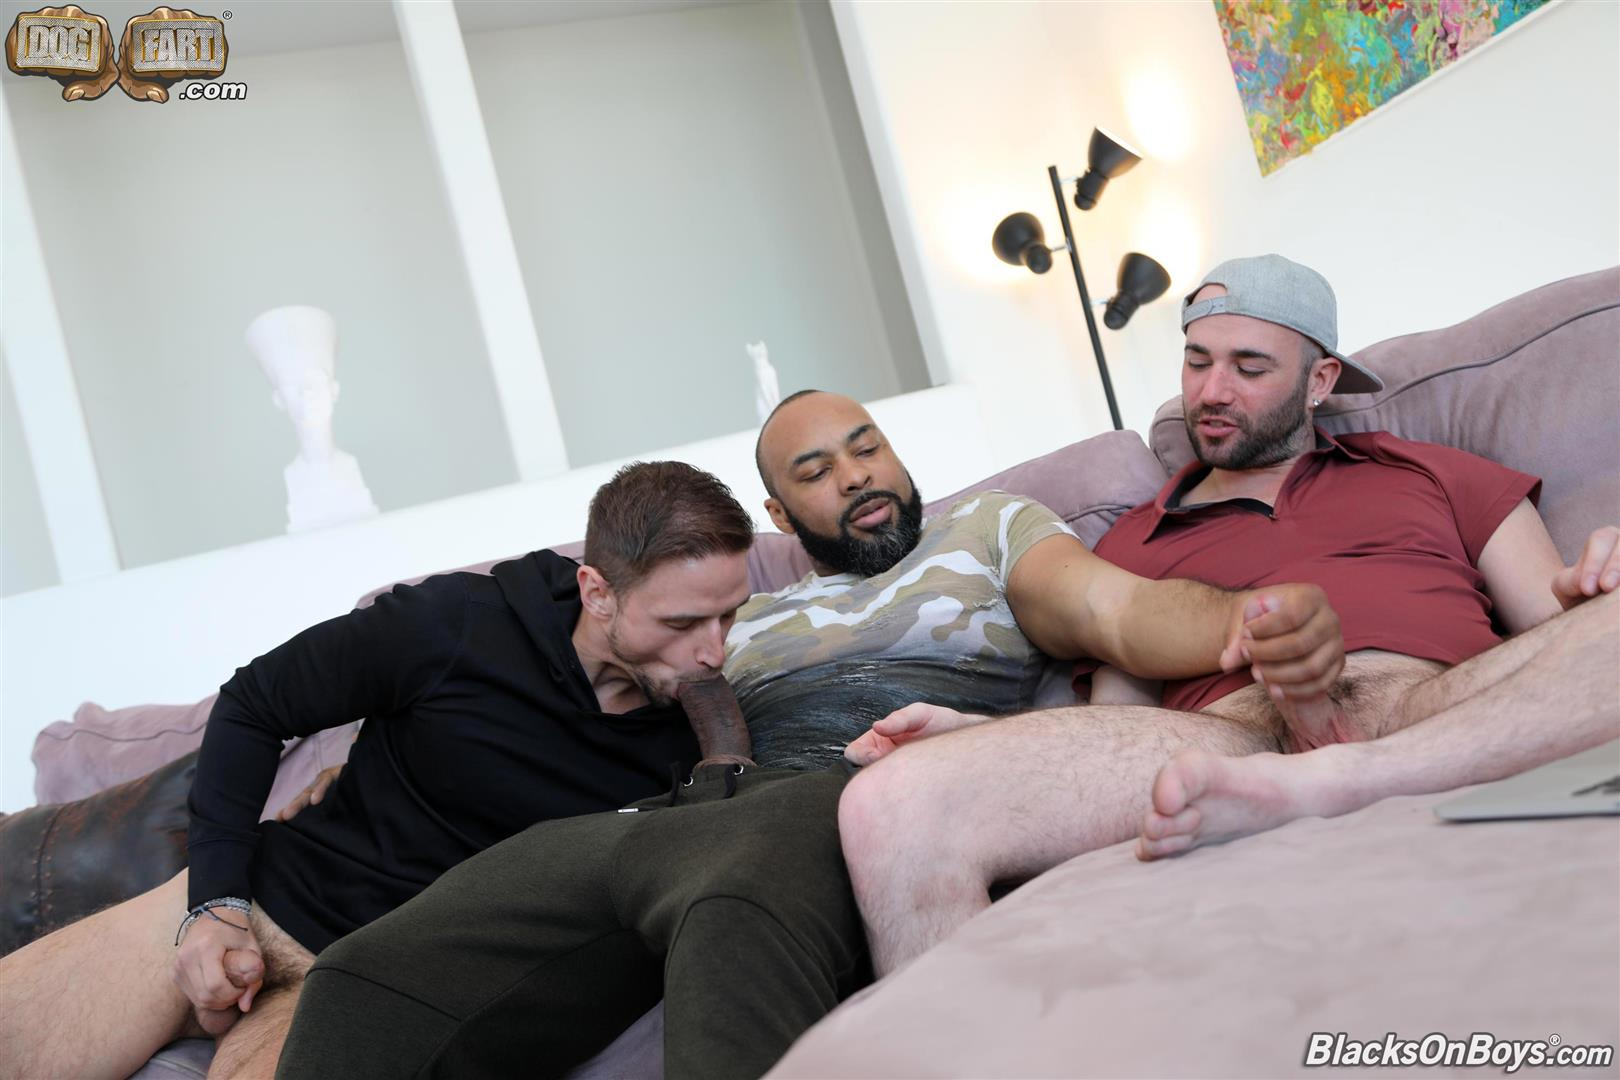 Blacks-on-Boys-Jackson-Reed-and-Alex-Mason-and-Ray-Diesel-White-Guys-Getting-Fucked-By-Big-Black-Cock-05 Even Horny Straight White Guys Like To Experiment With Big Black Cock